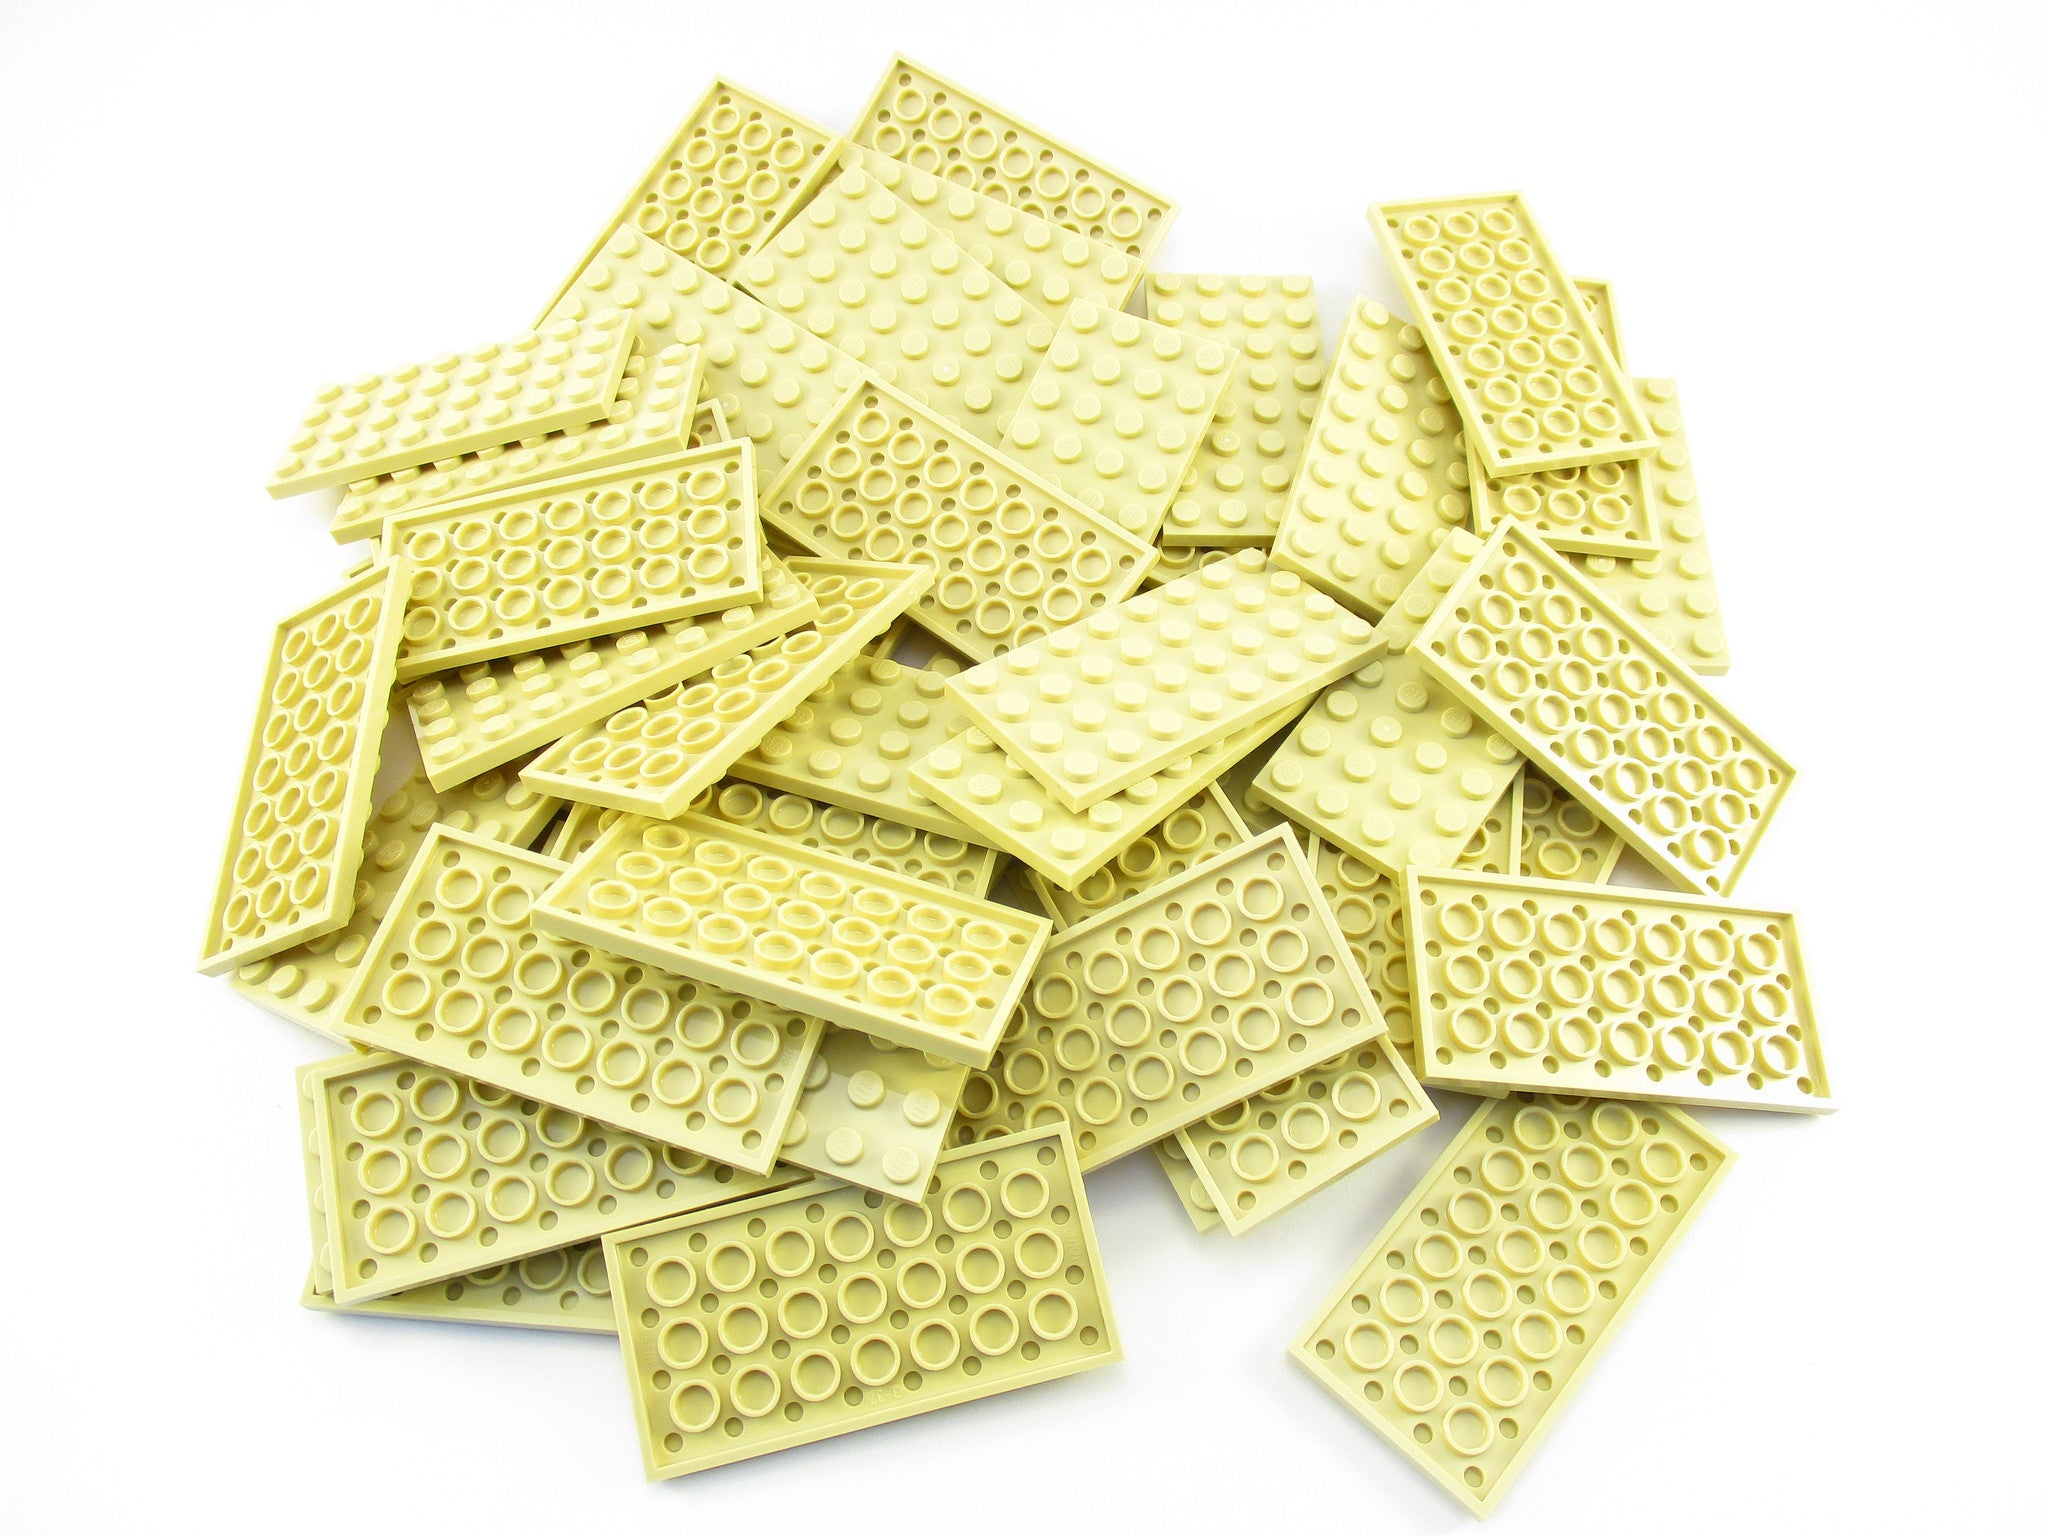 LEGO Tan Plate 4x8 Lot of 50 Parts Pieces 3035